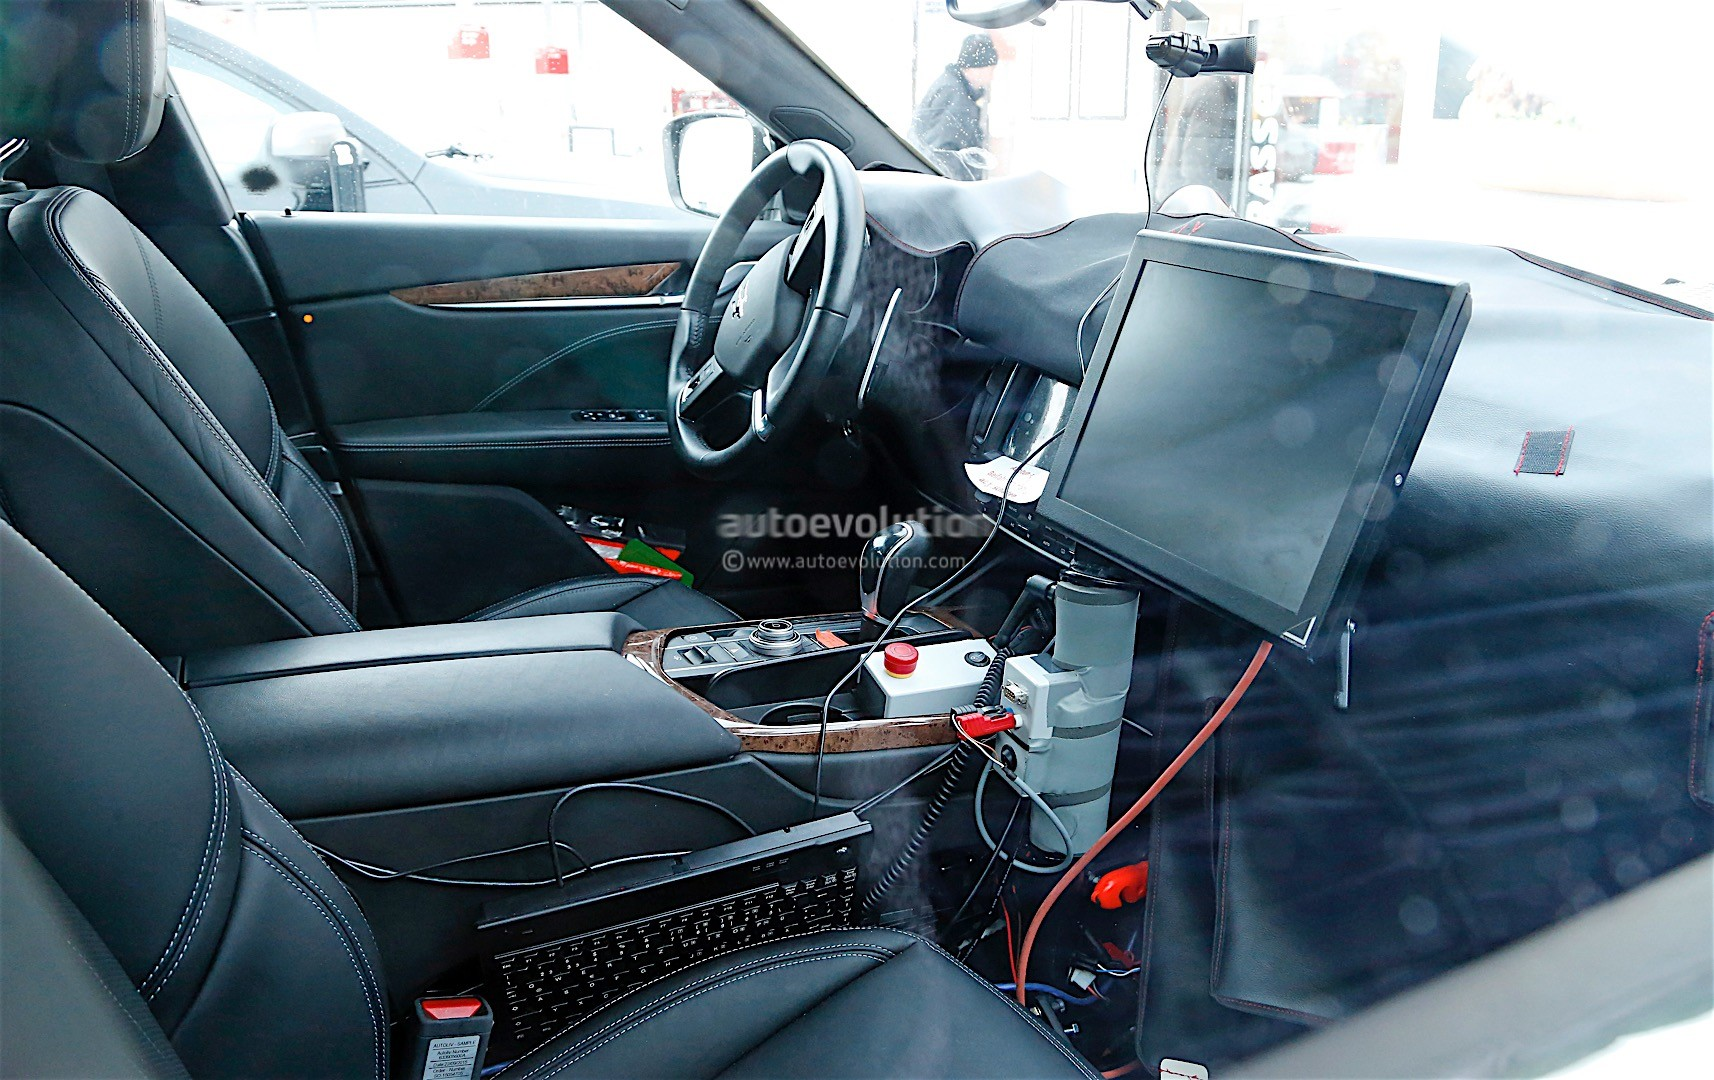 update maserati levante interior revealed has tablet like infotainment system autoevolution. Black Bedroom Furniture Sets. Home Design Ideas